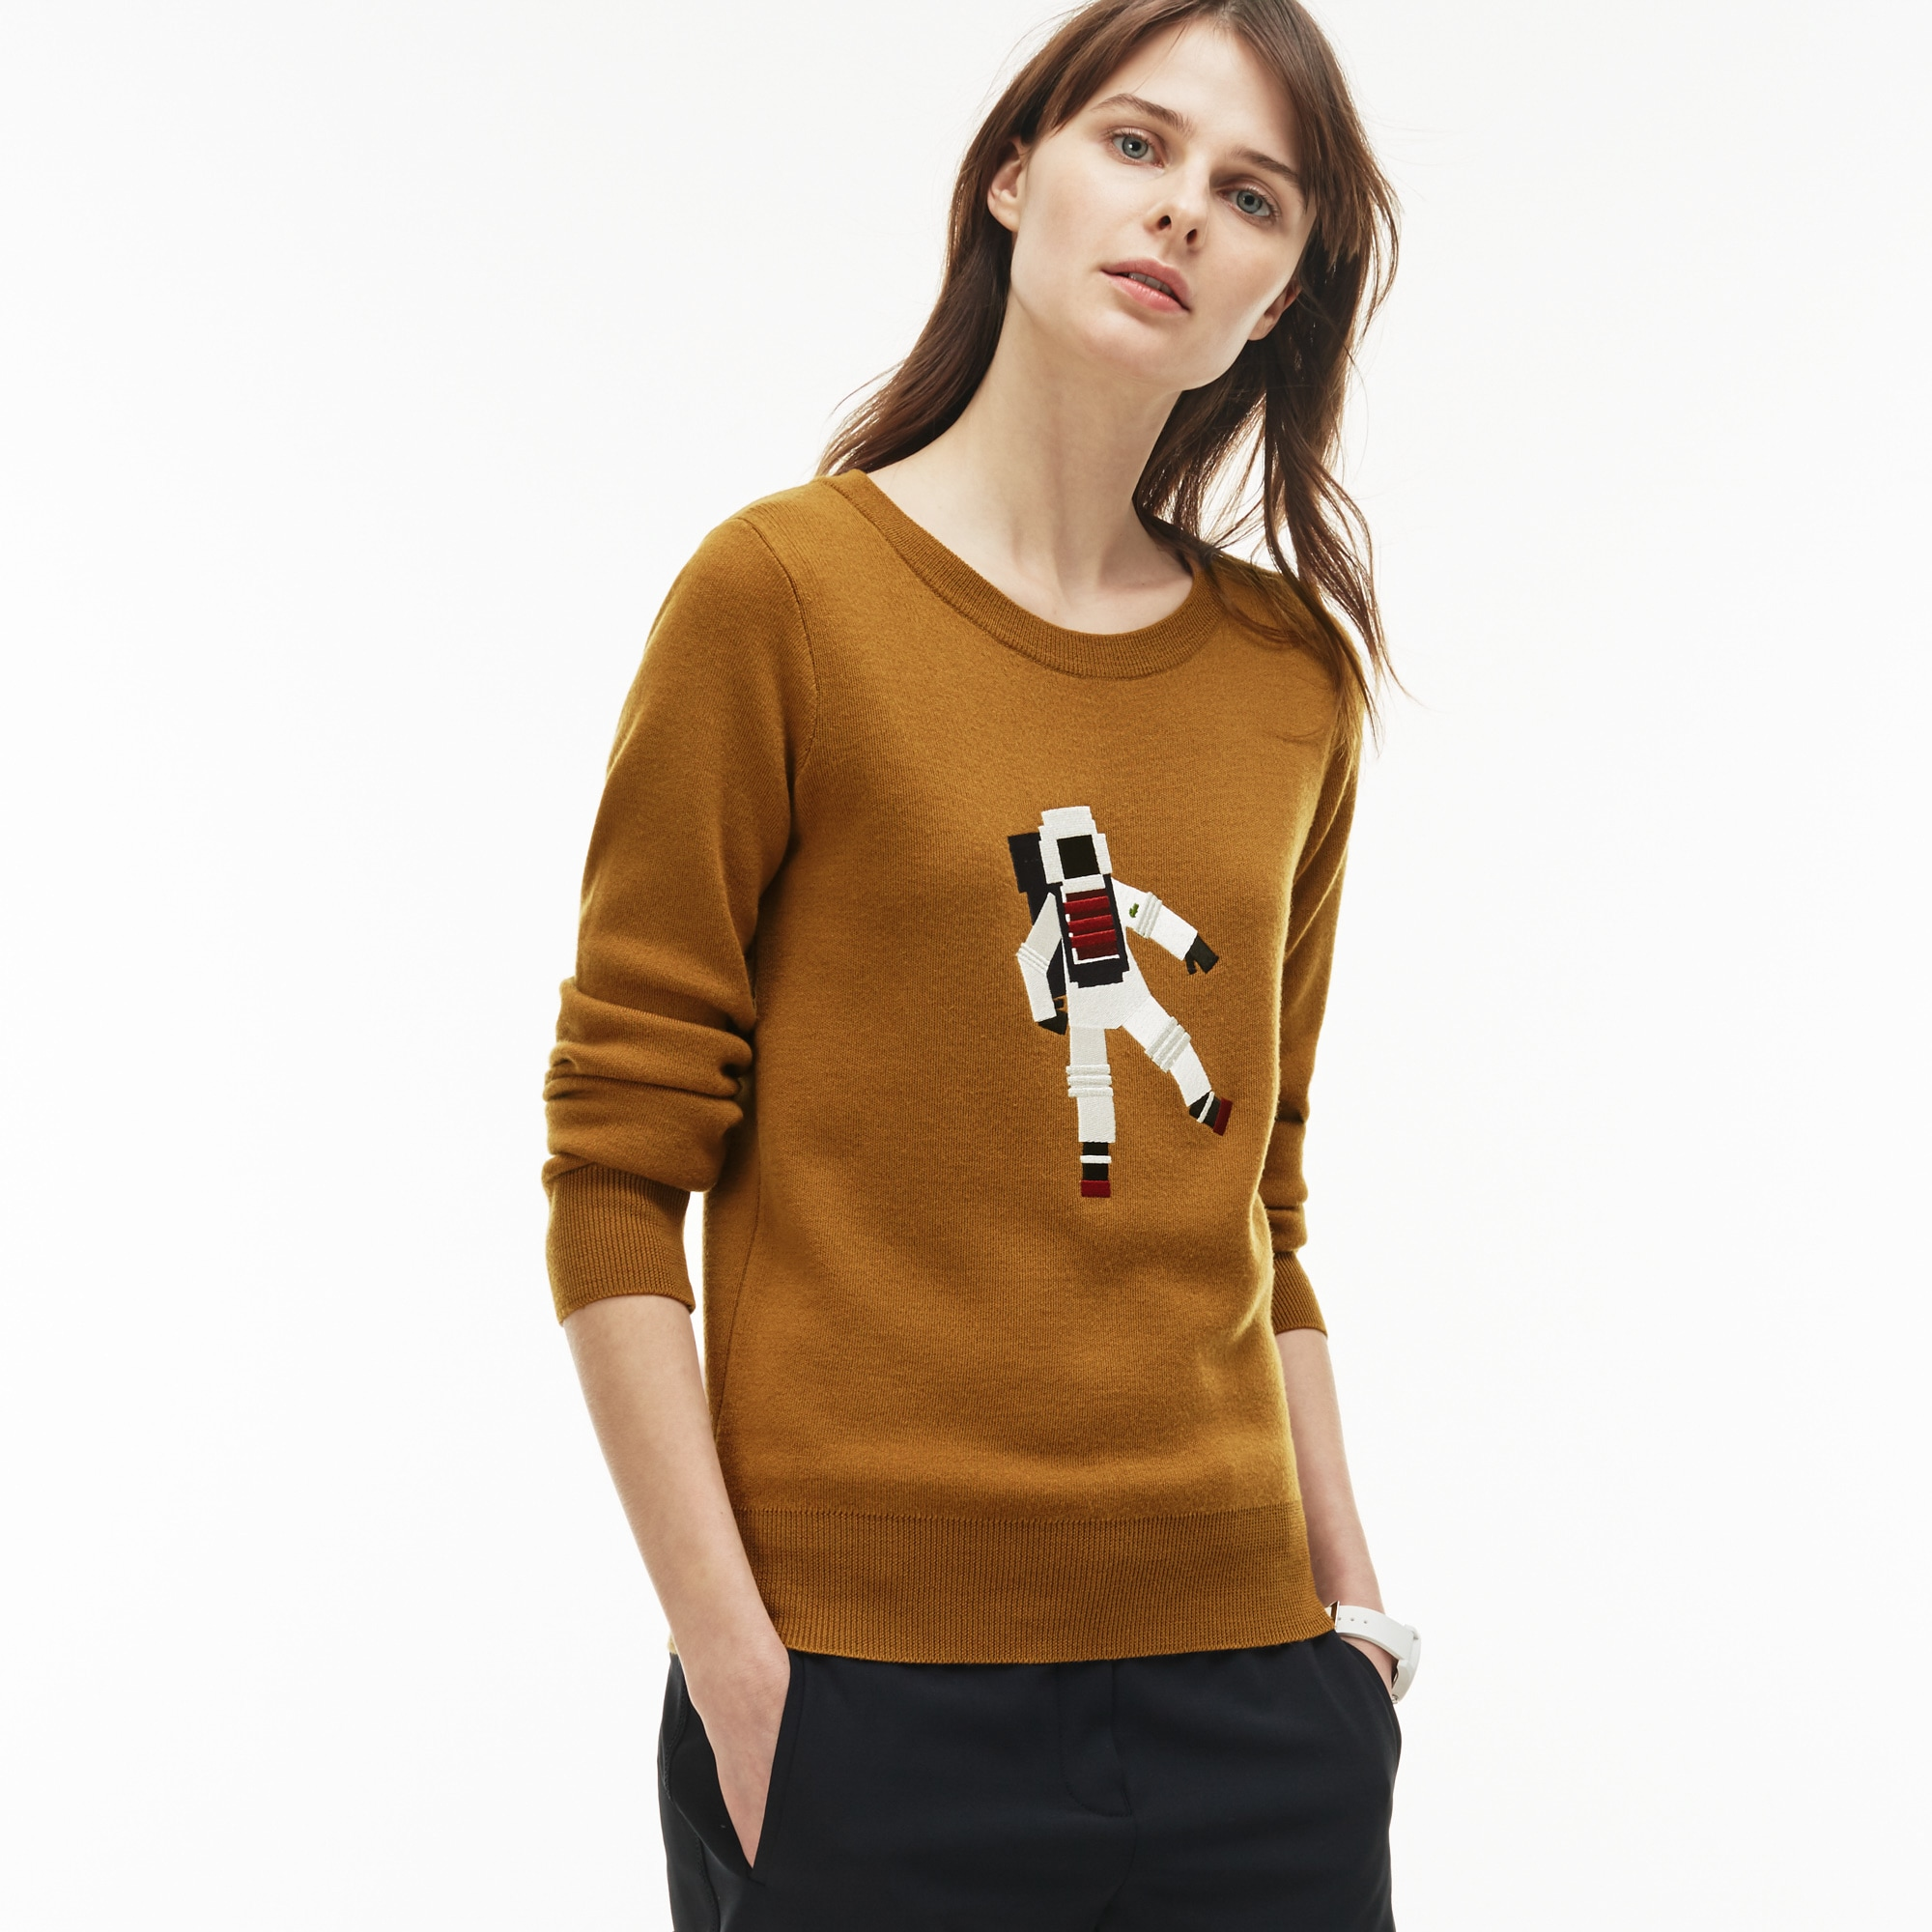 Women's Crew Neck Astronaut Embroidery Wool Interlock Sweater